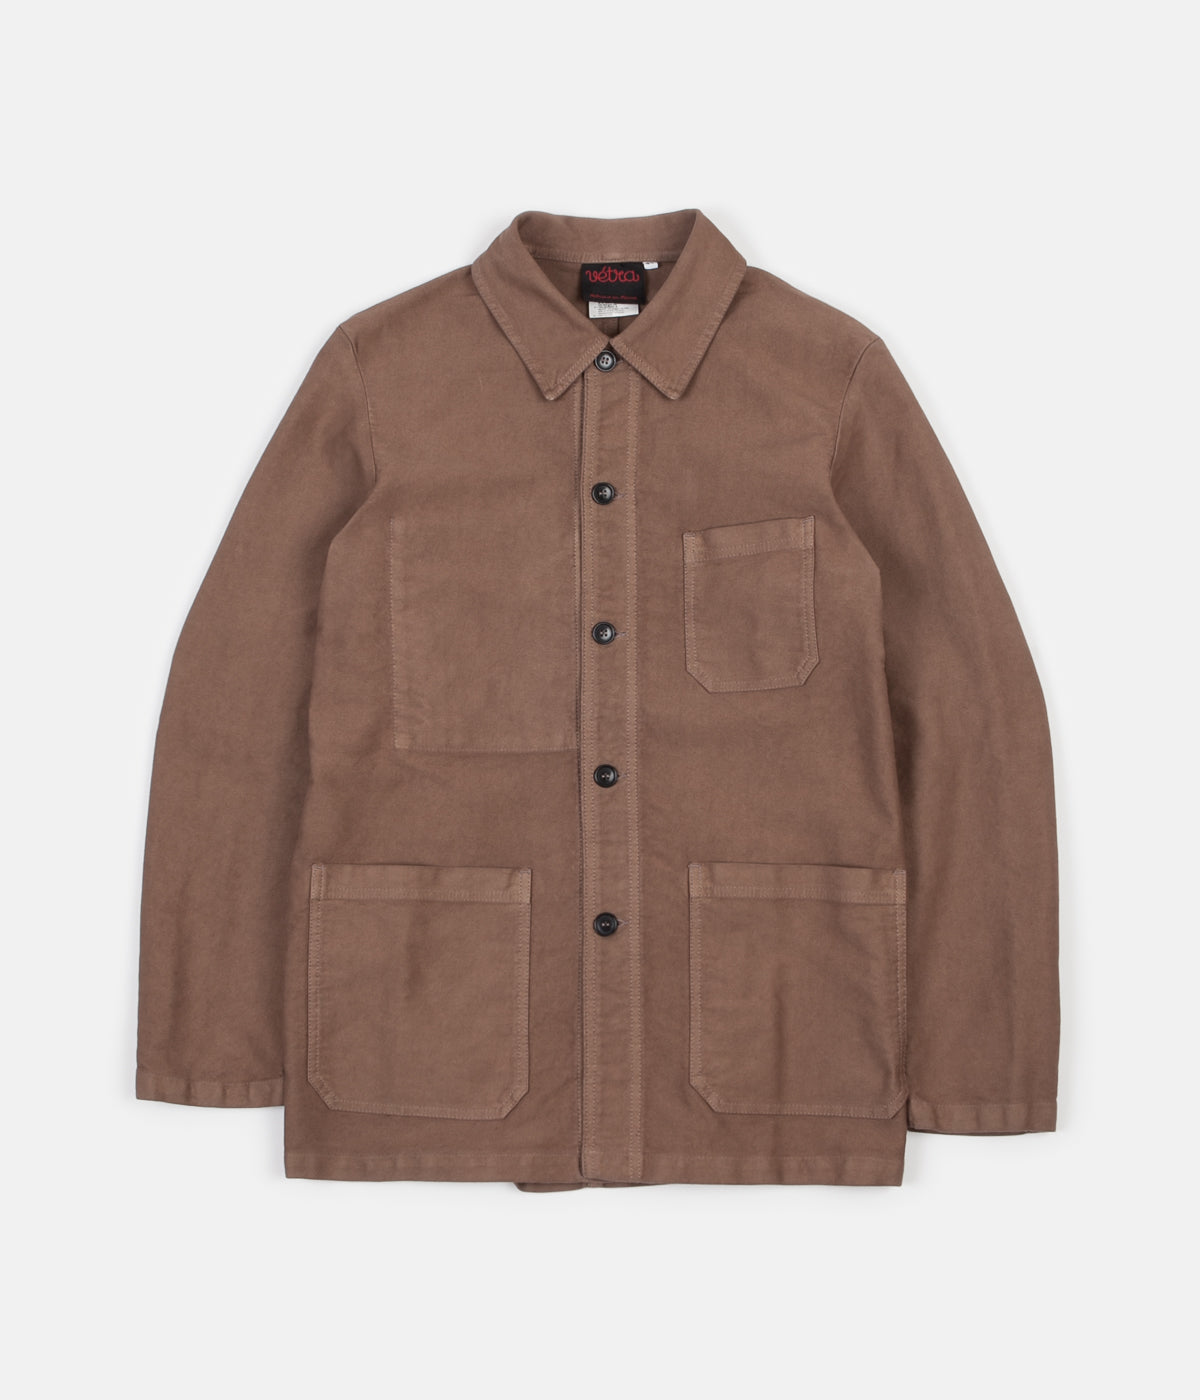 Vetra French Moleskin No.4 Workwear Jacket - Cachou